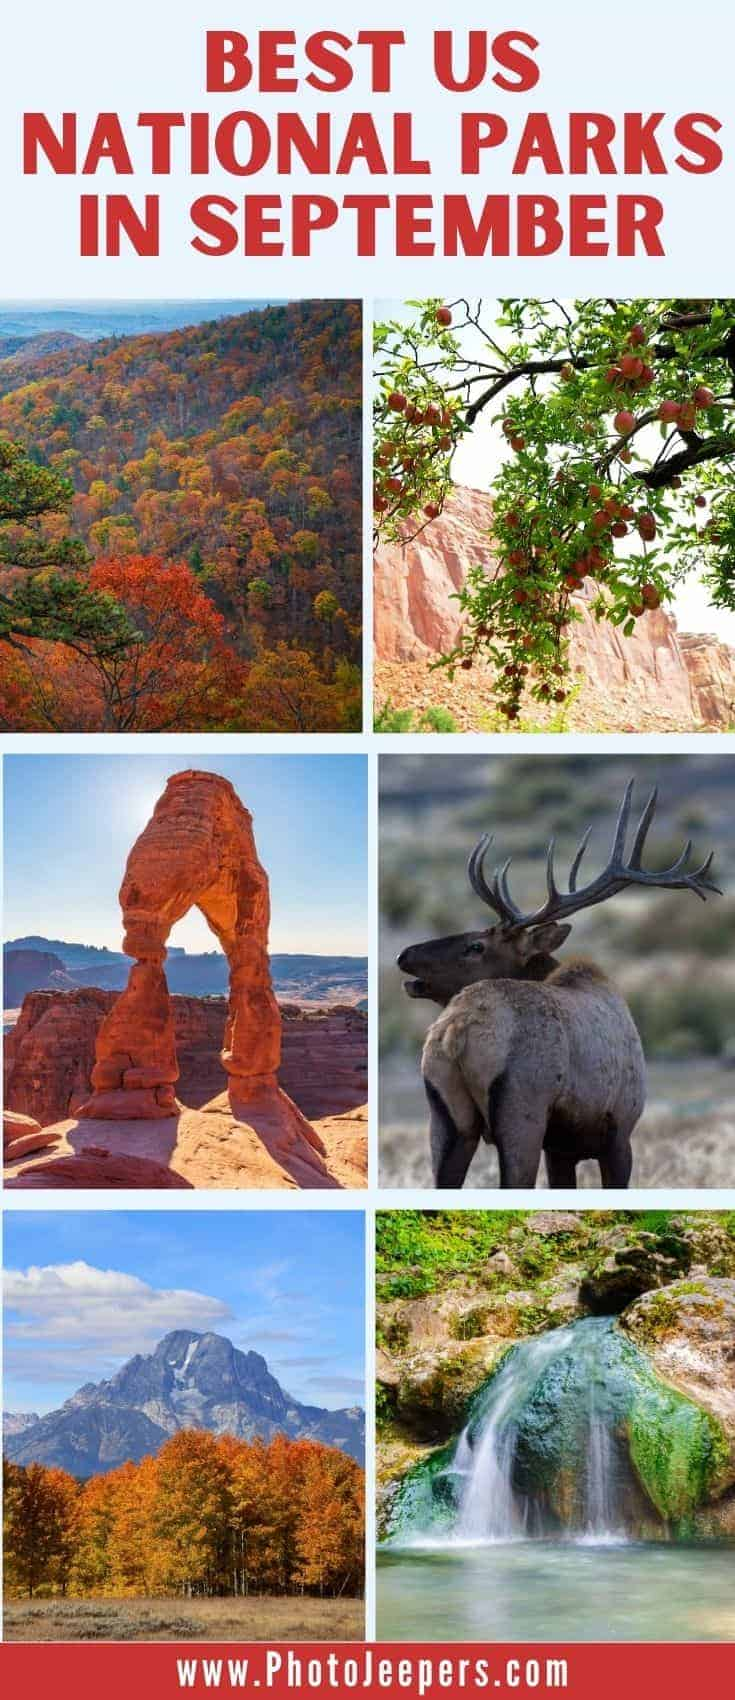 Best US National Parks in September